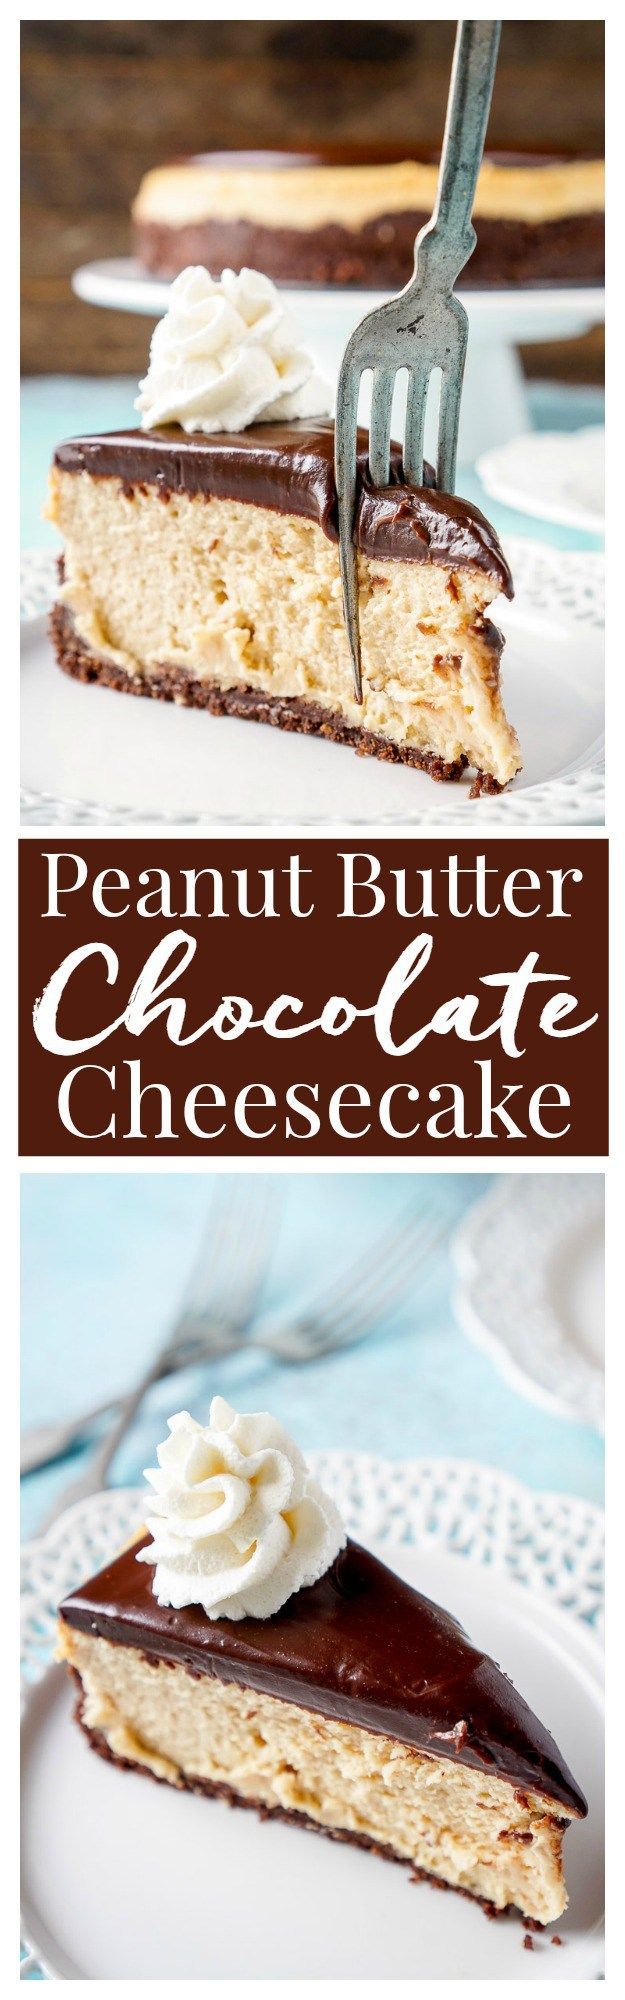 This Peanut Butter Chocolate Cheesecake recipe is a silky, peanut buttery dessert sandwiched between a rich chocolate graham cracker crust and a tempting chocolate ganache.